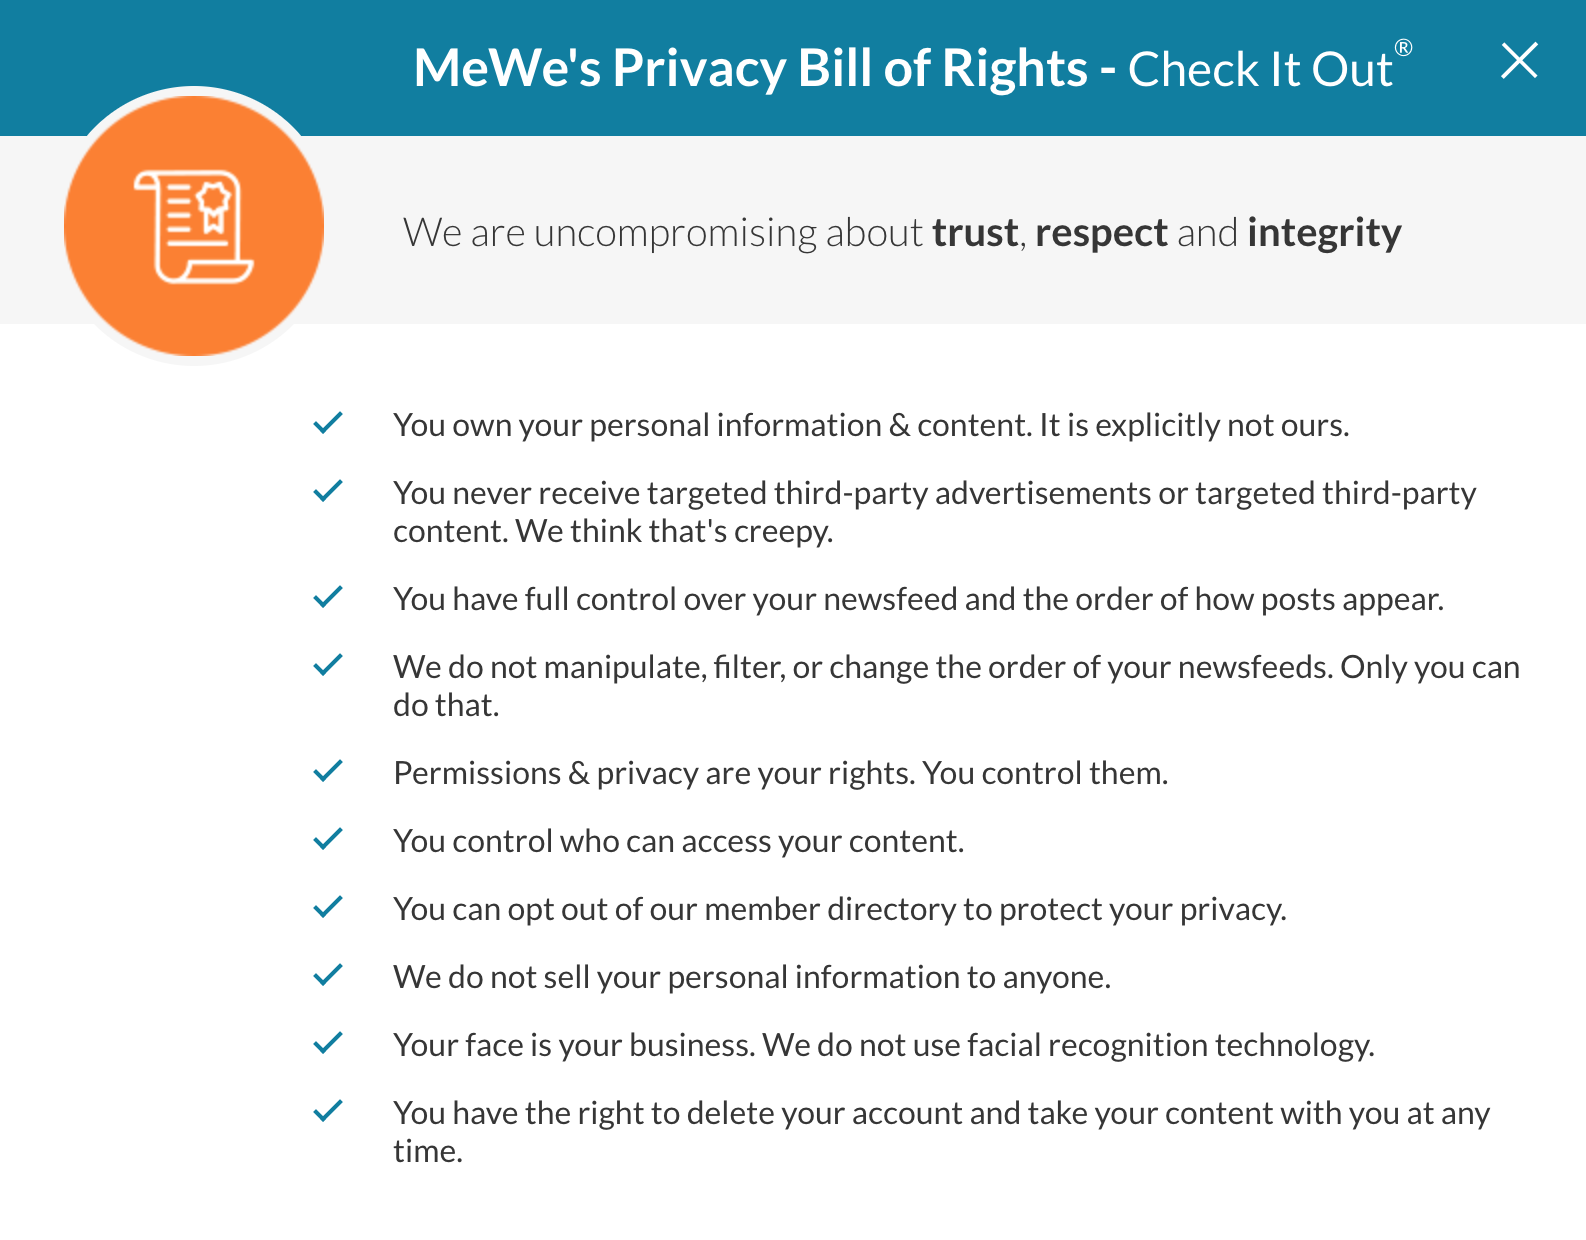 MeWe_s_Privacy_Bill_of_Rights.png